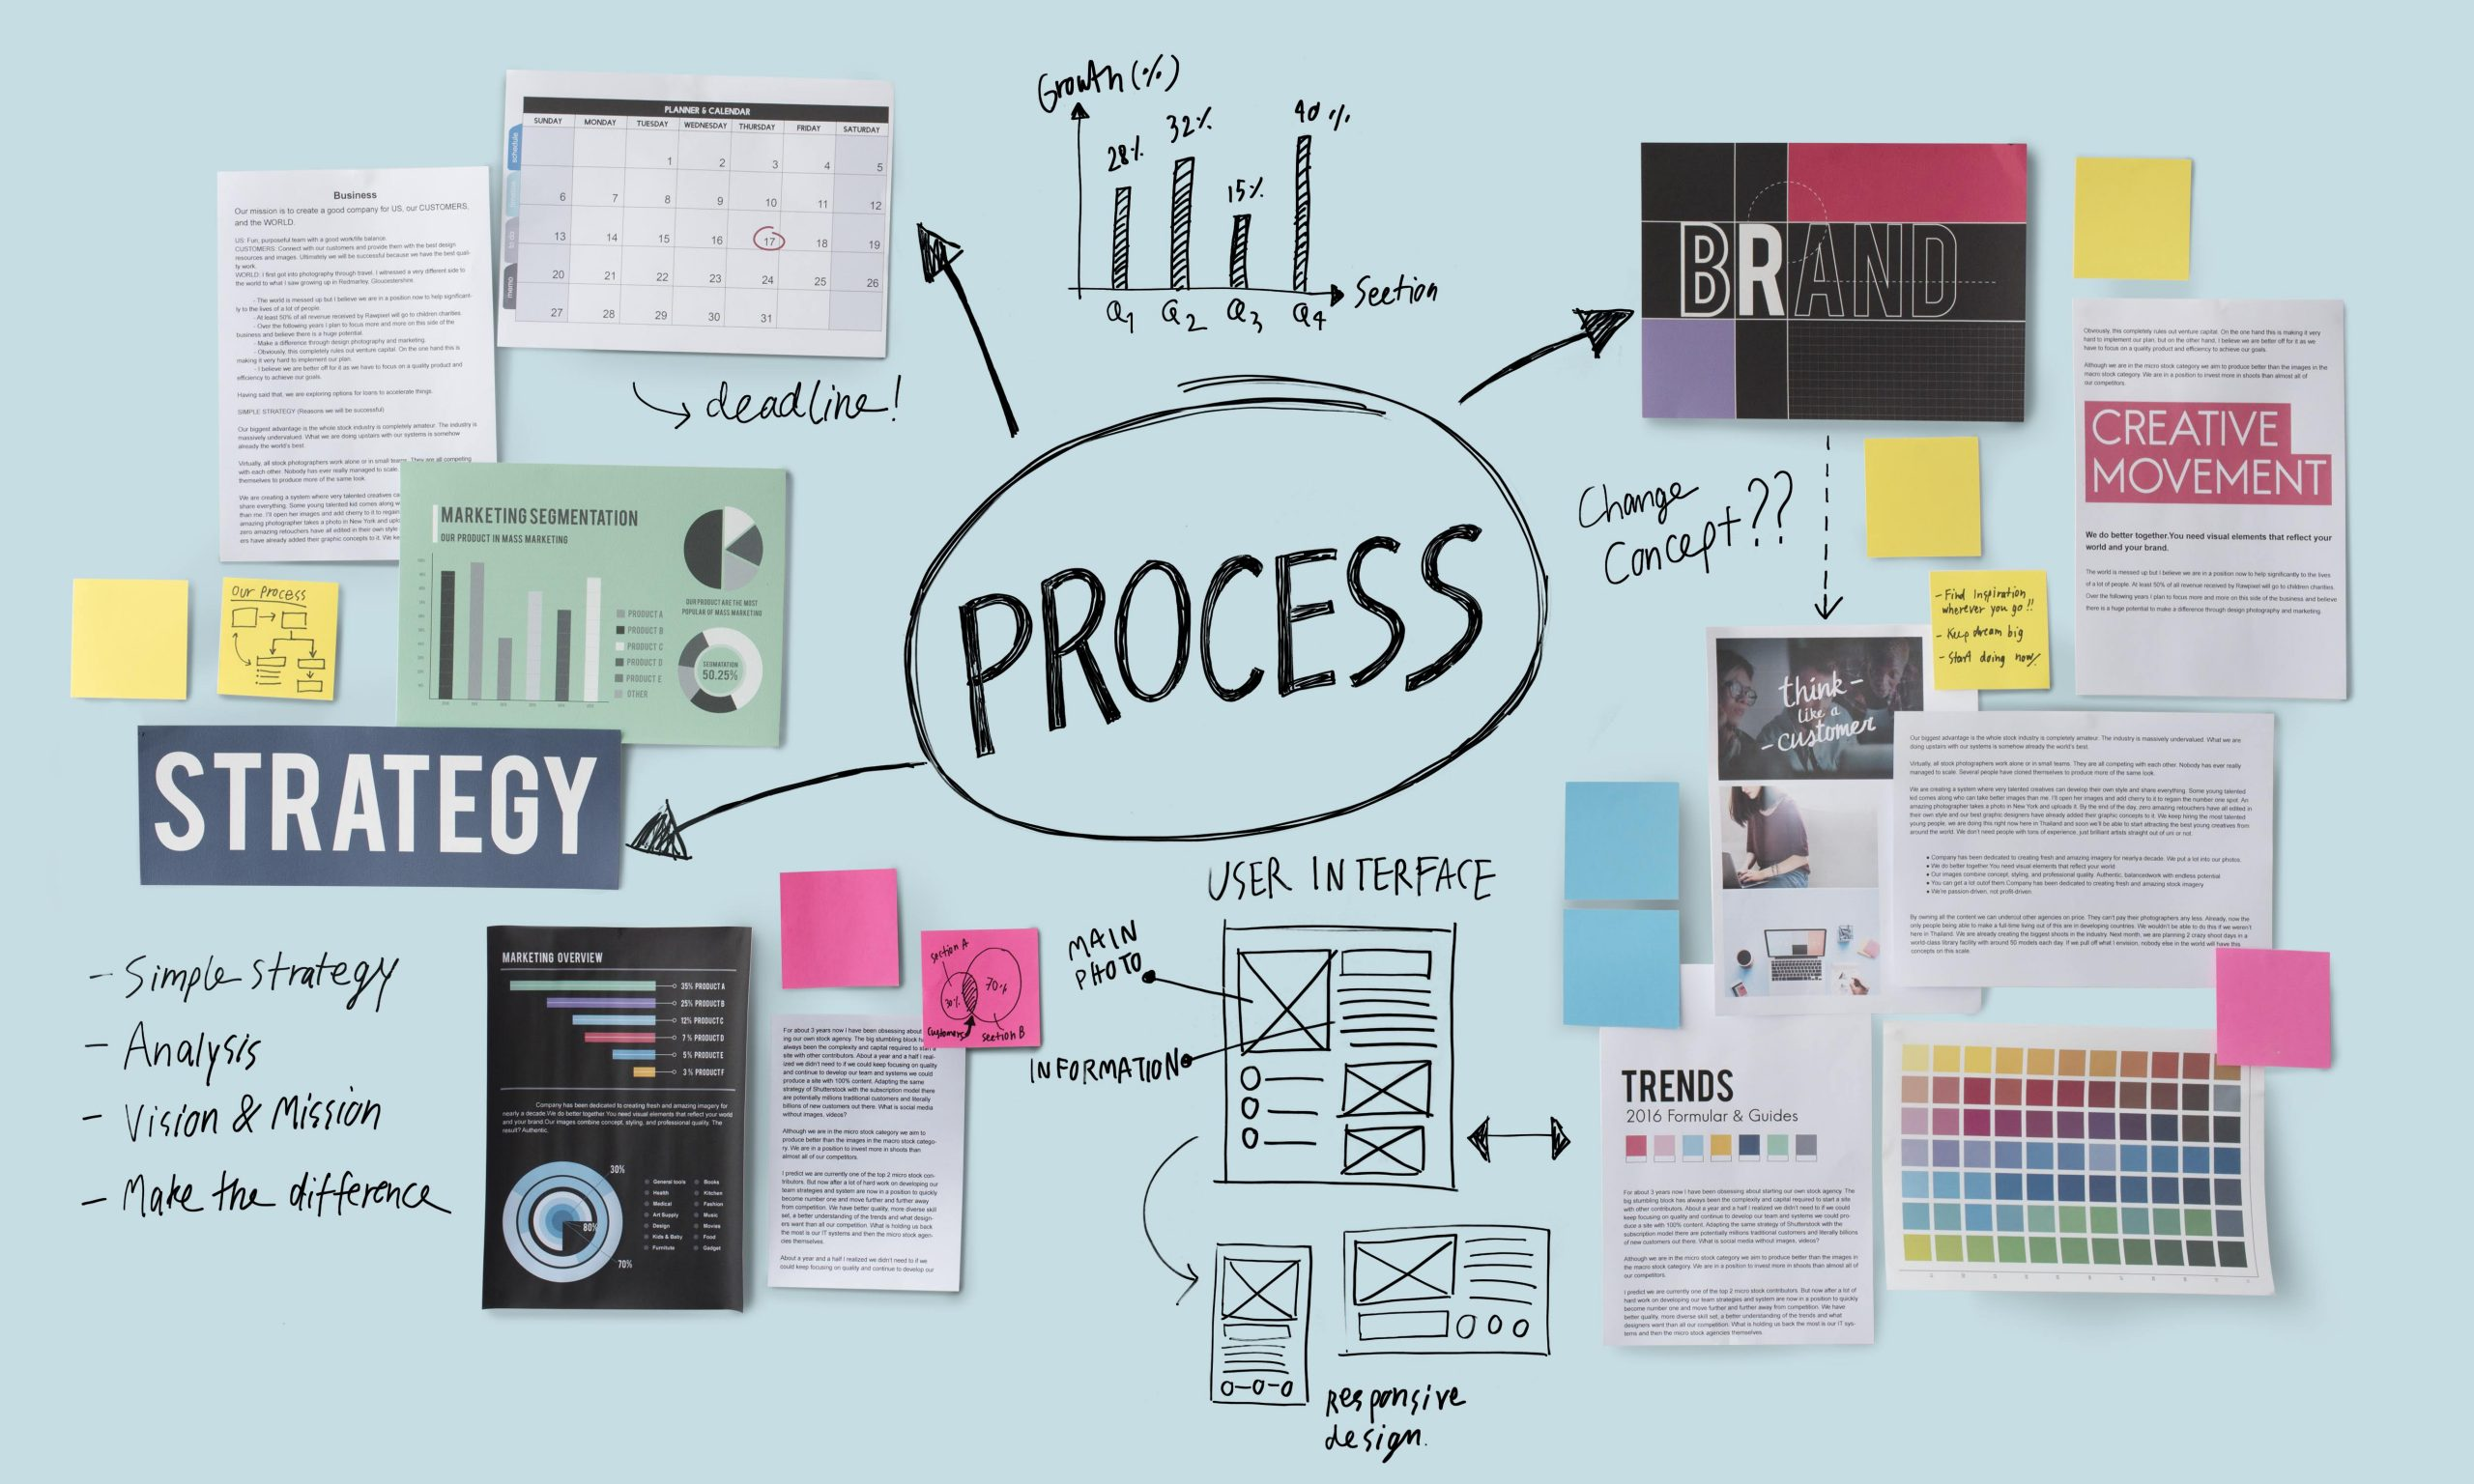 Understand process to improve process